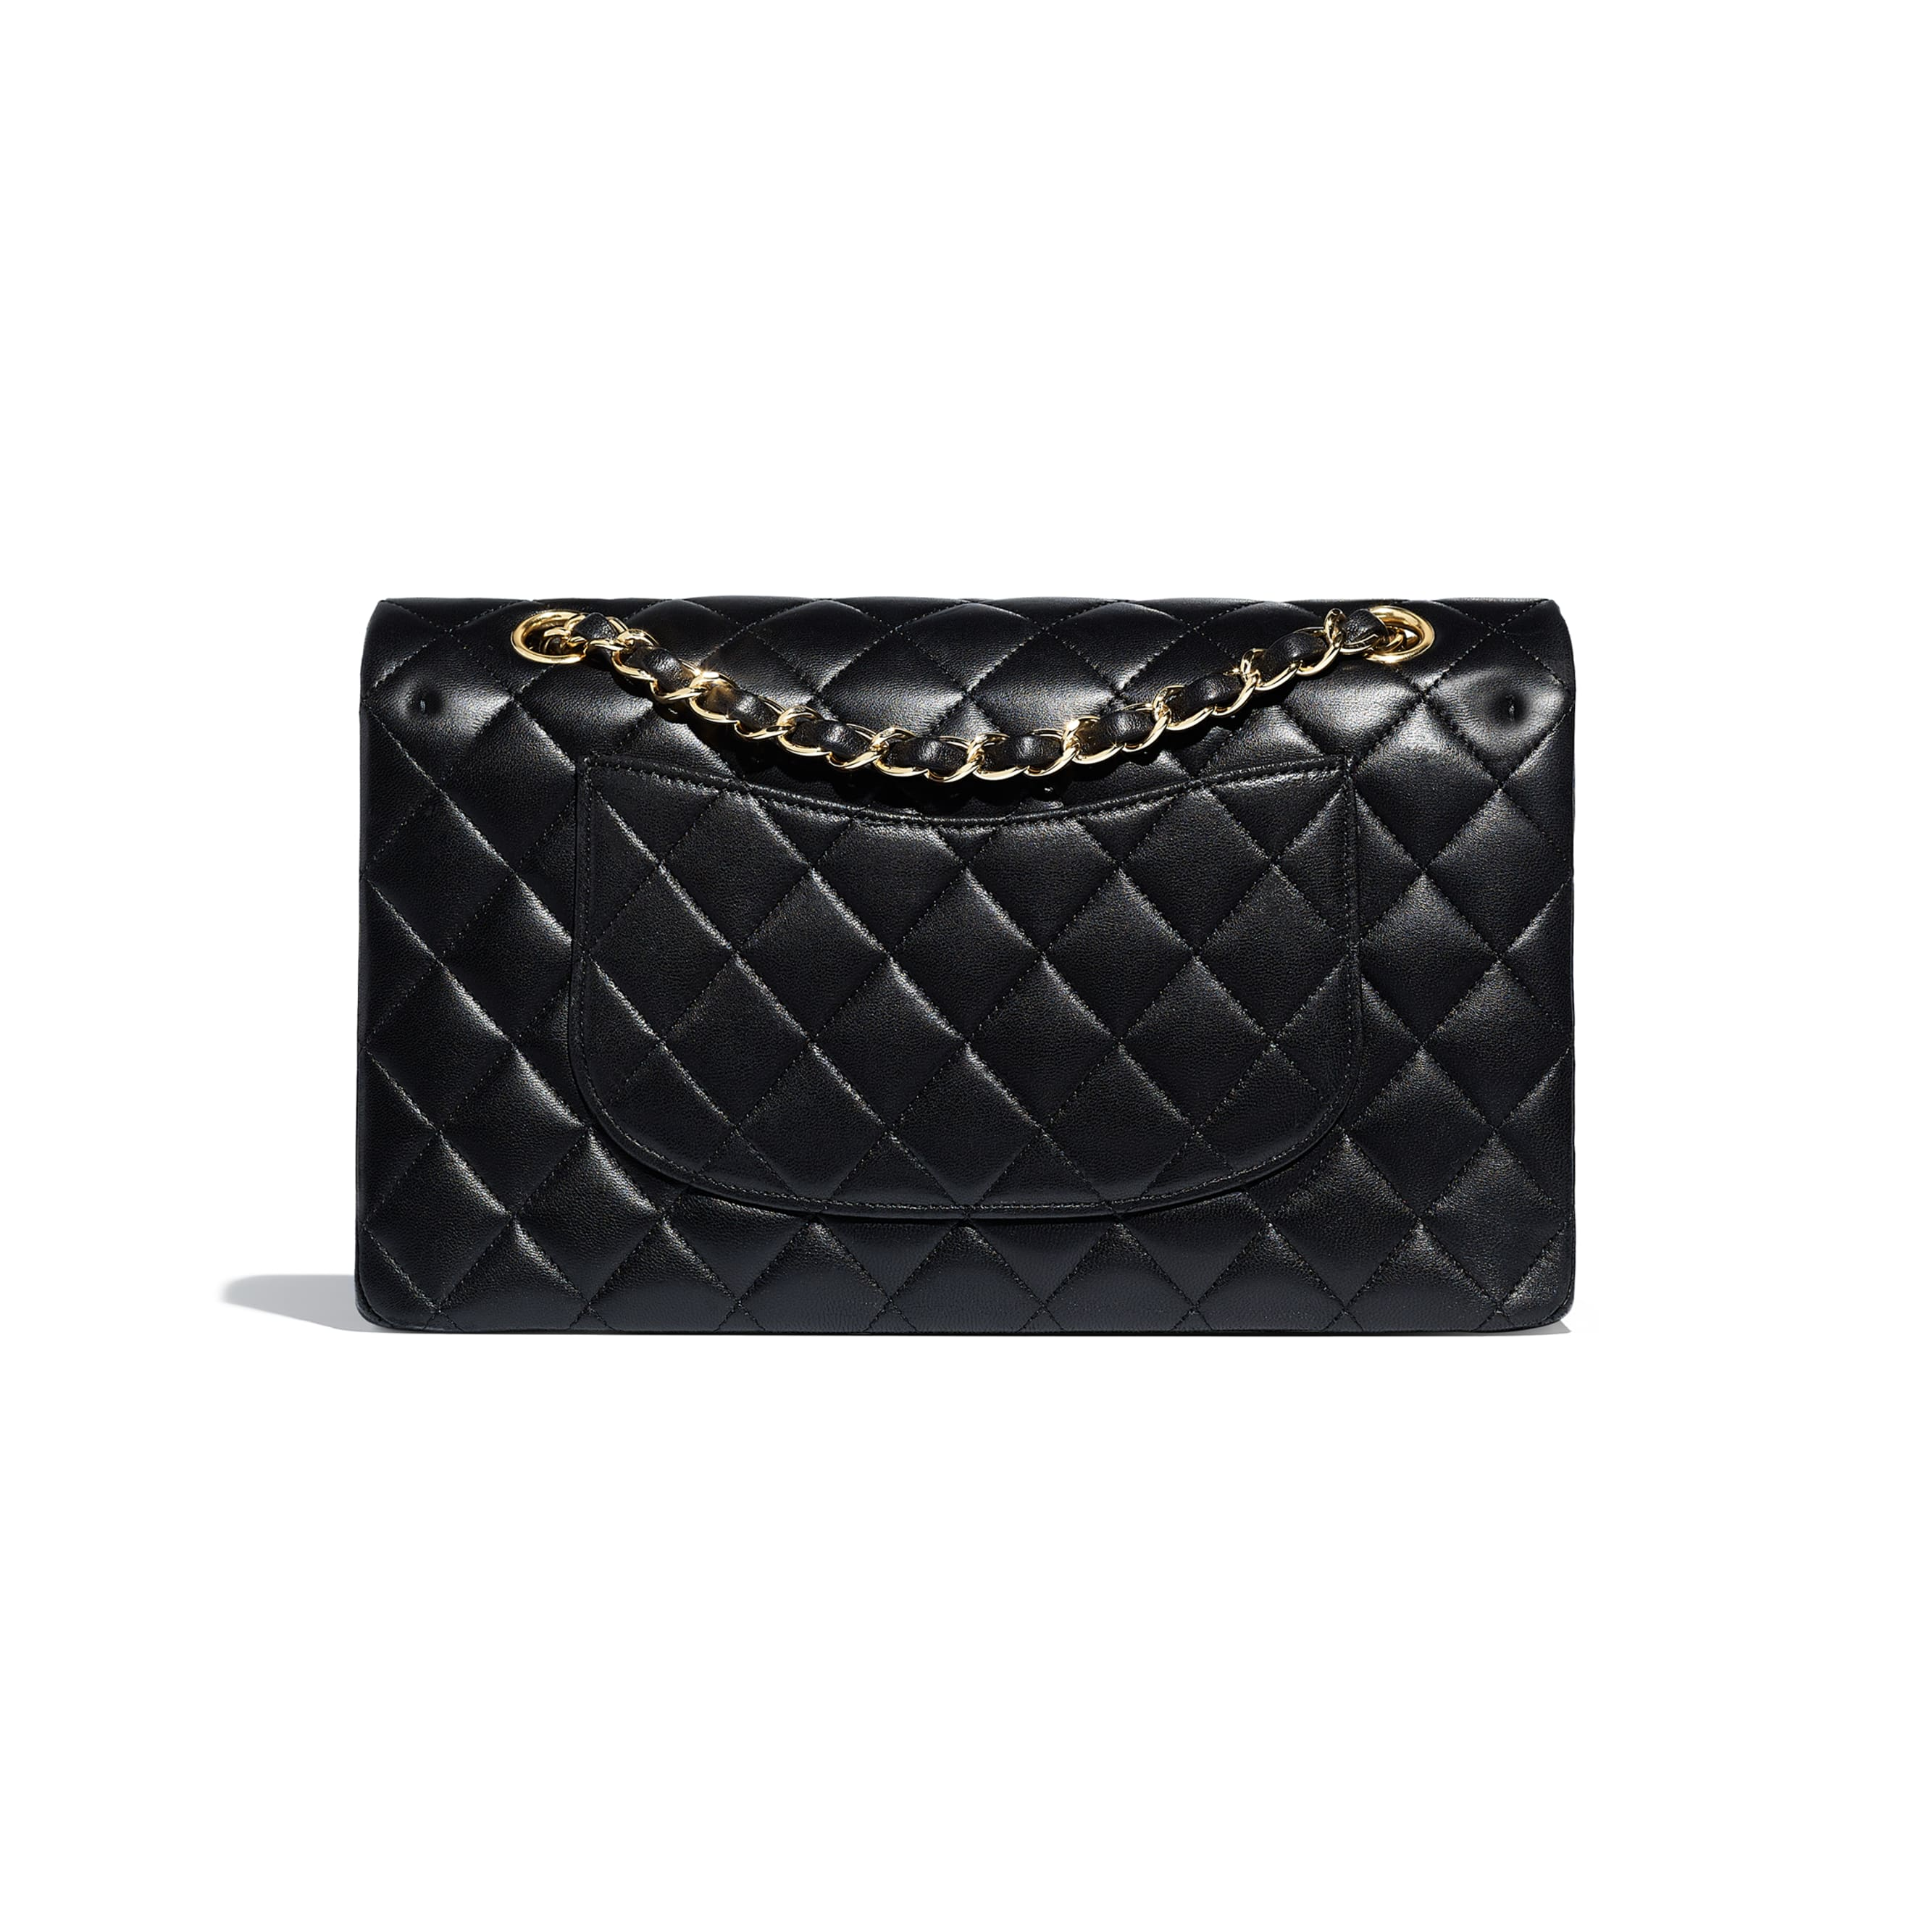 Classic Handbag - Black - Lambskin - CHANEL - Alternative view - see standard sized version